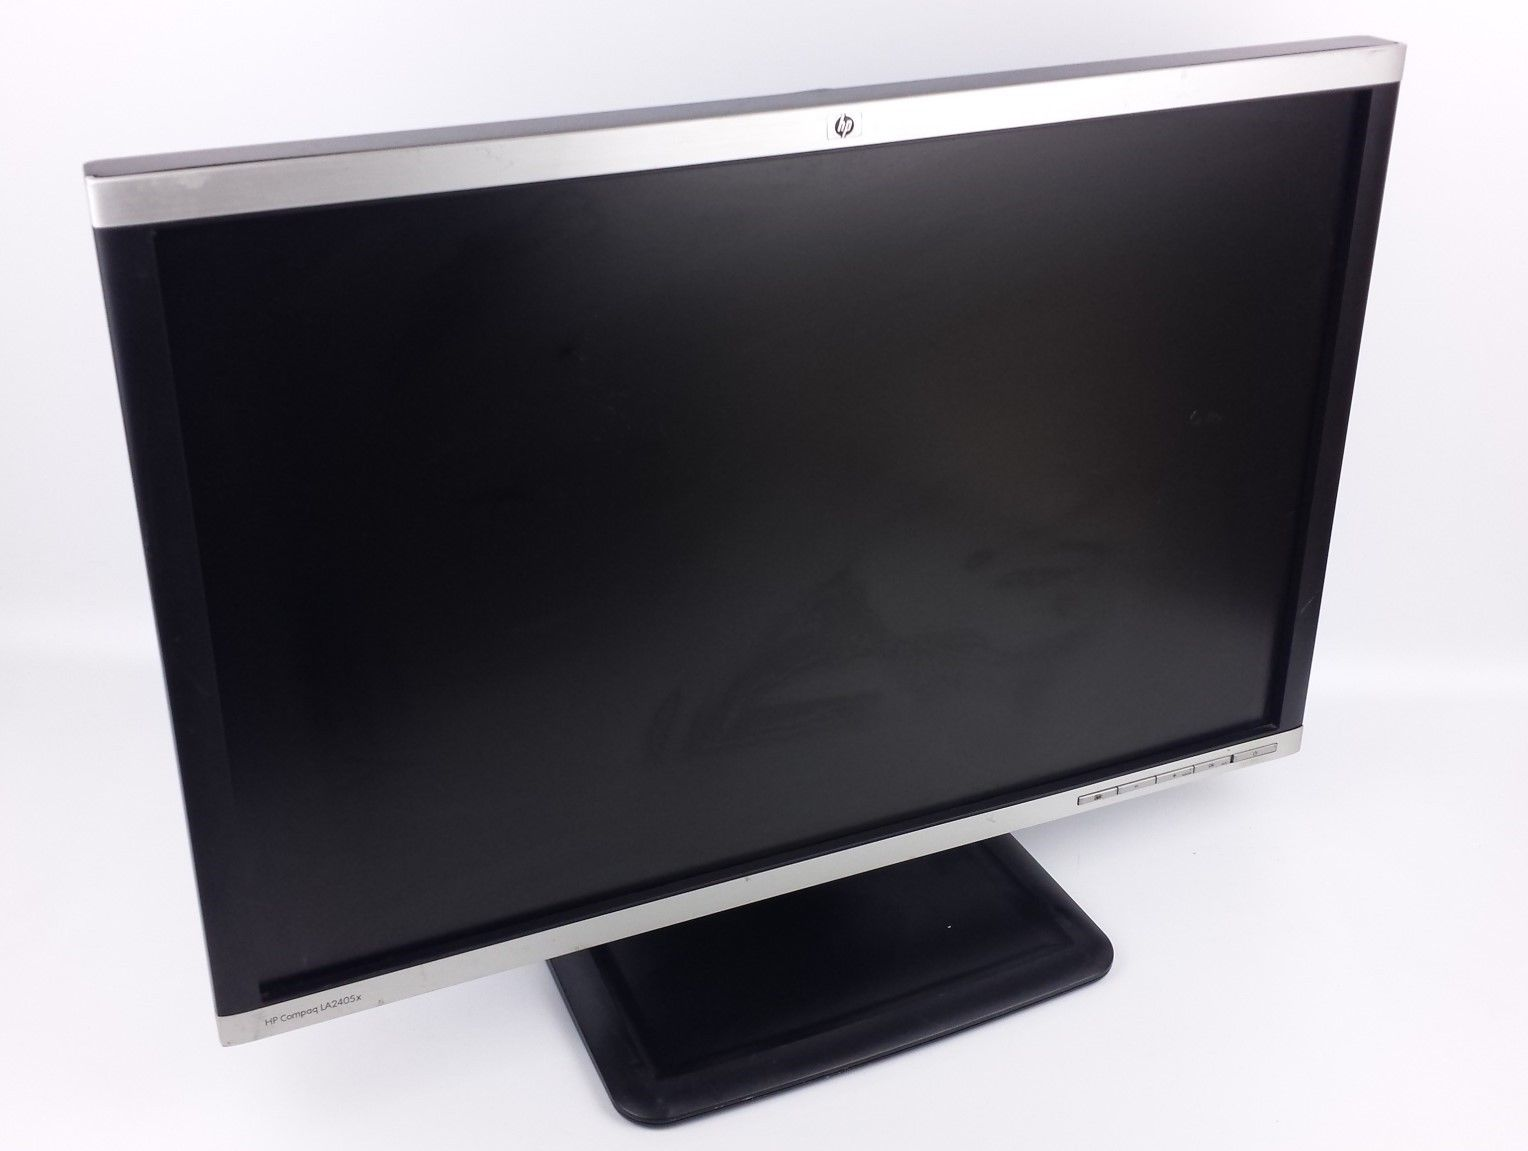 "HP Compaq LA2405x Widescreen LED LCD Computer Monitor 24"" w/ Power & VGA Cord"